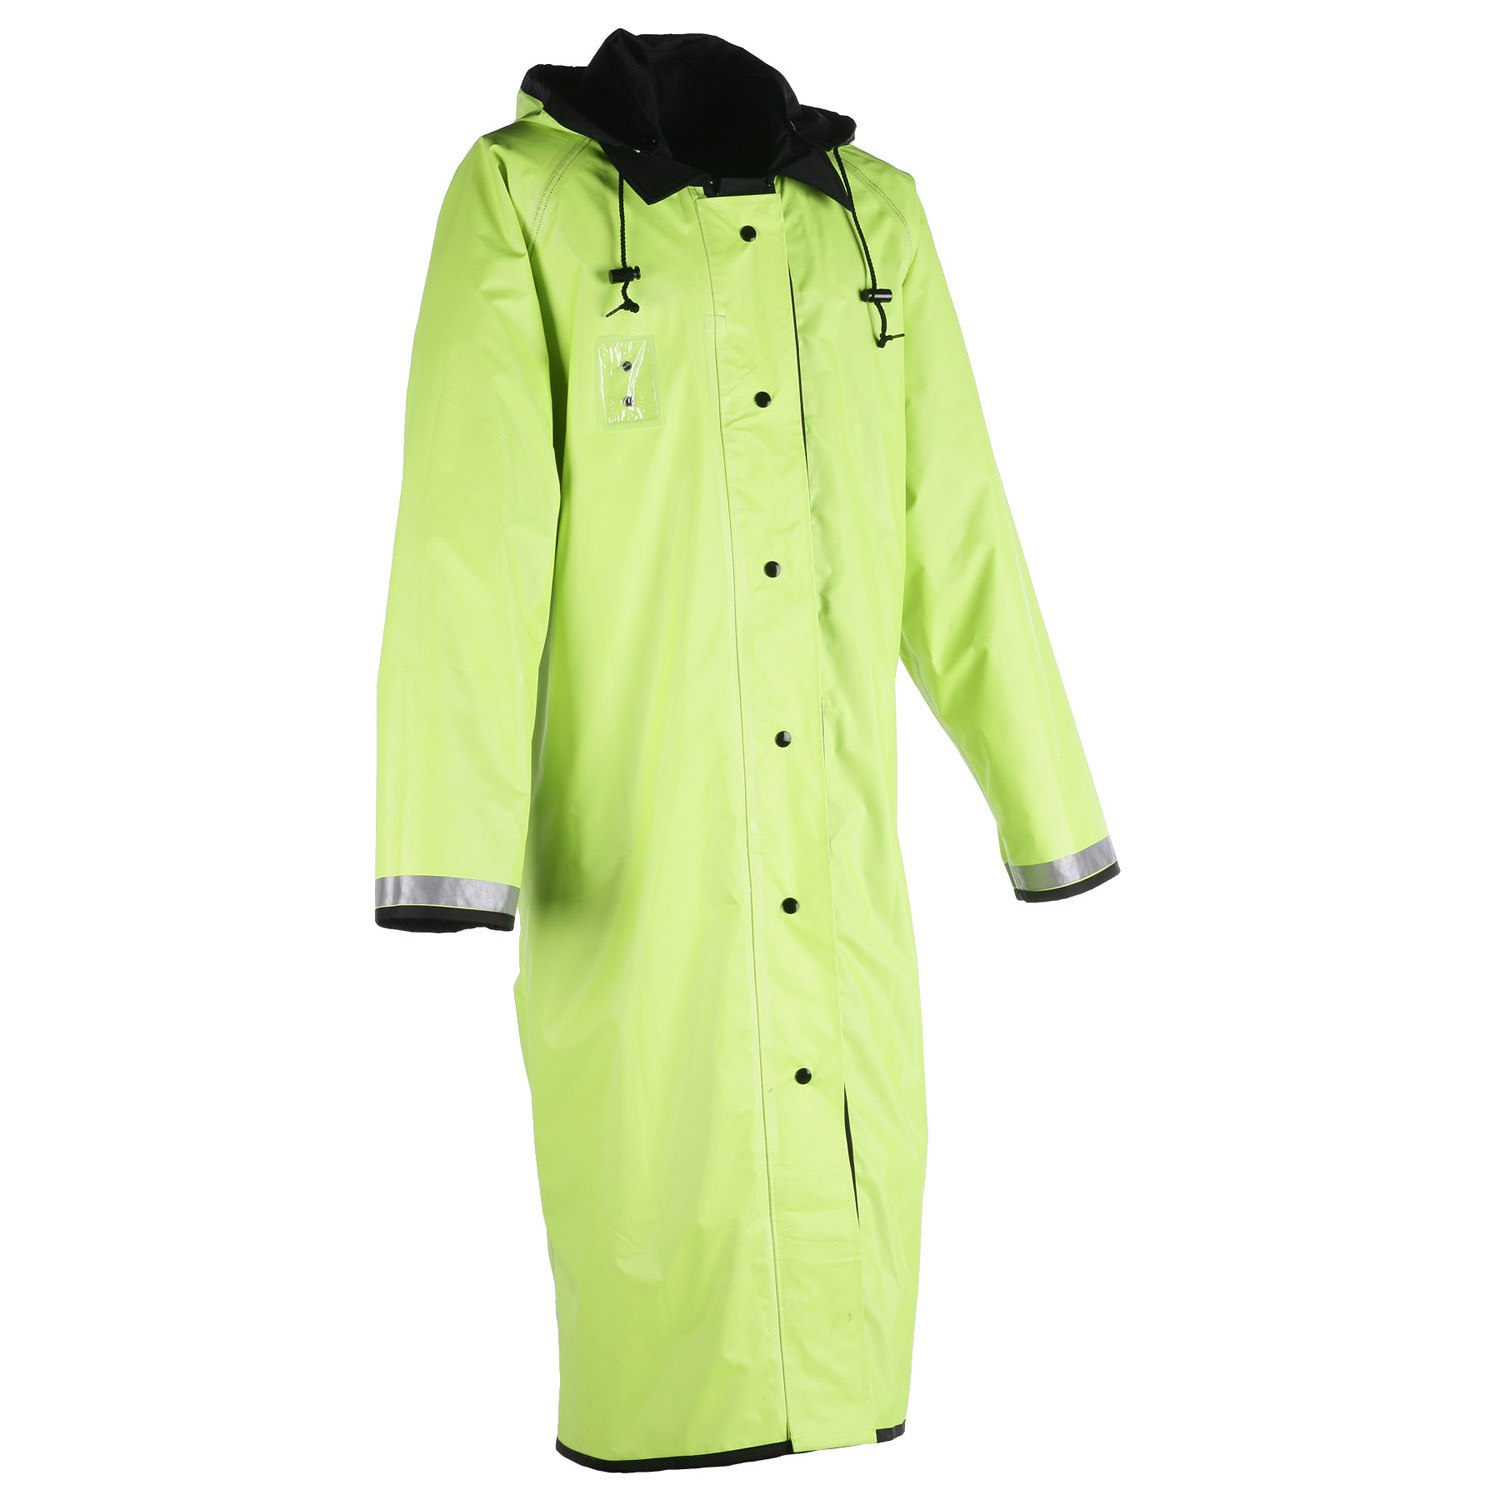 "LawPro 48"" Deluxe Reversible Raincoat with Detachable Hood"